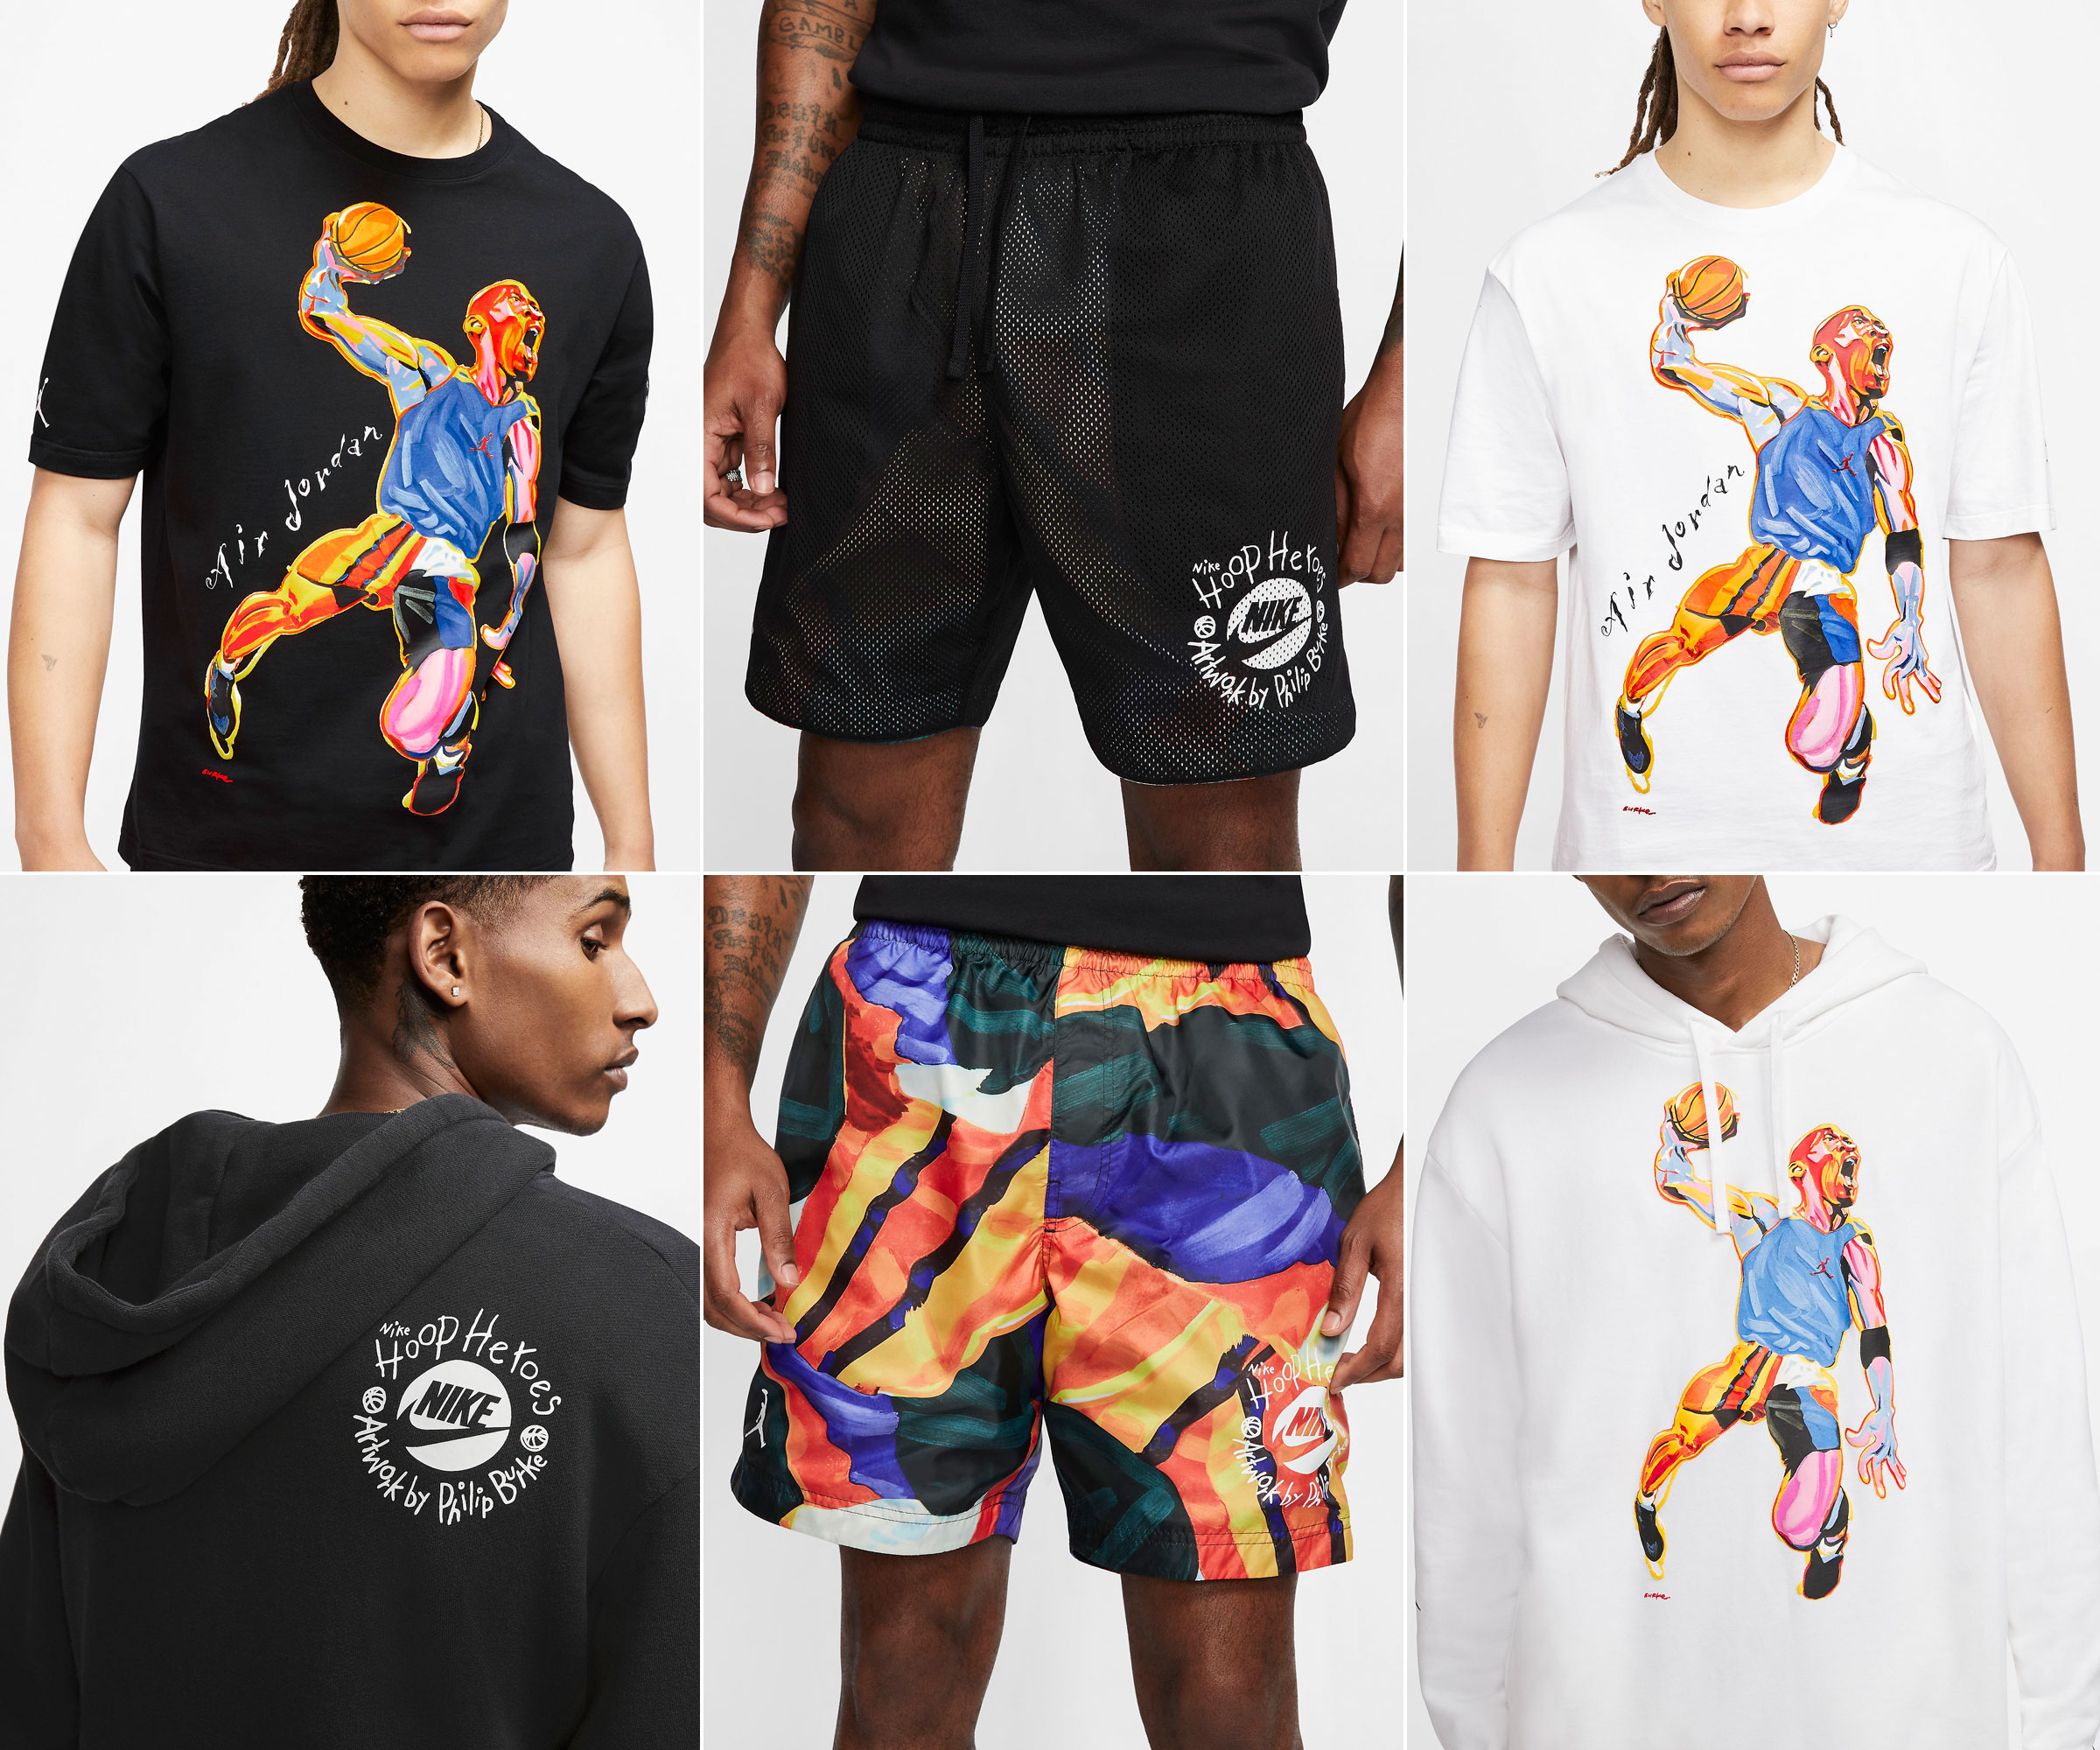 jordan-hoop-heroes-artwork-clothing